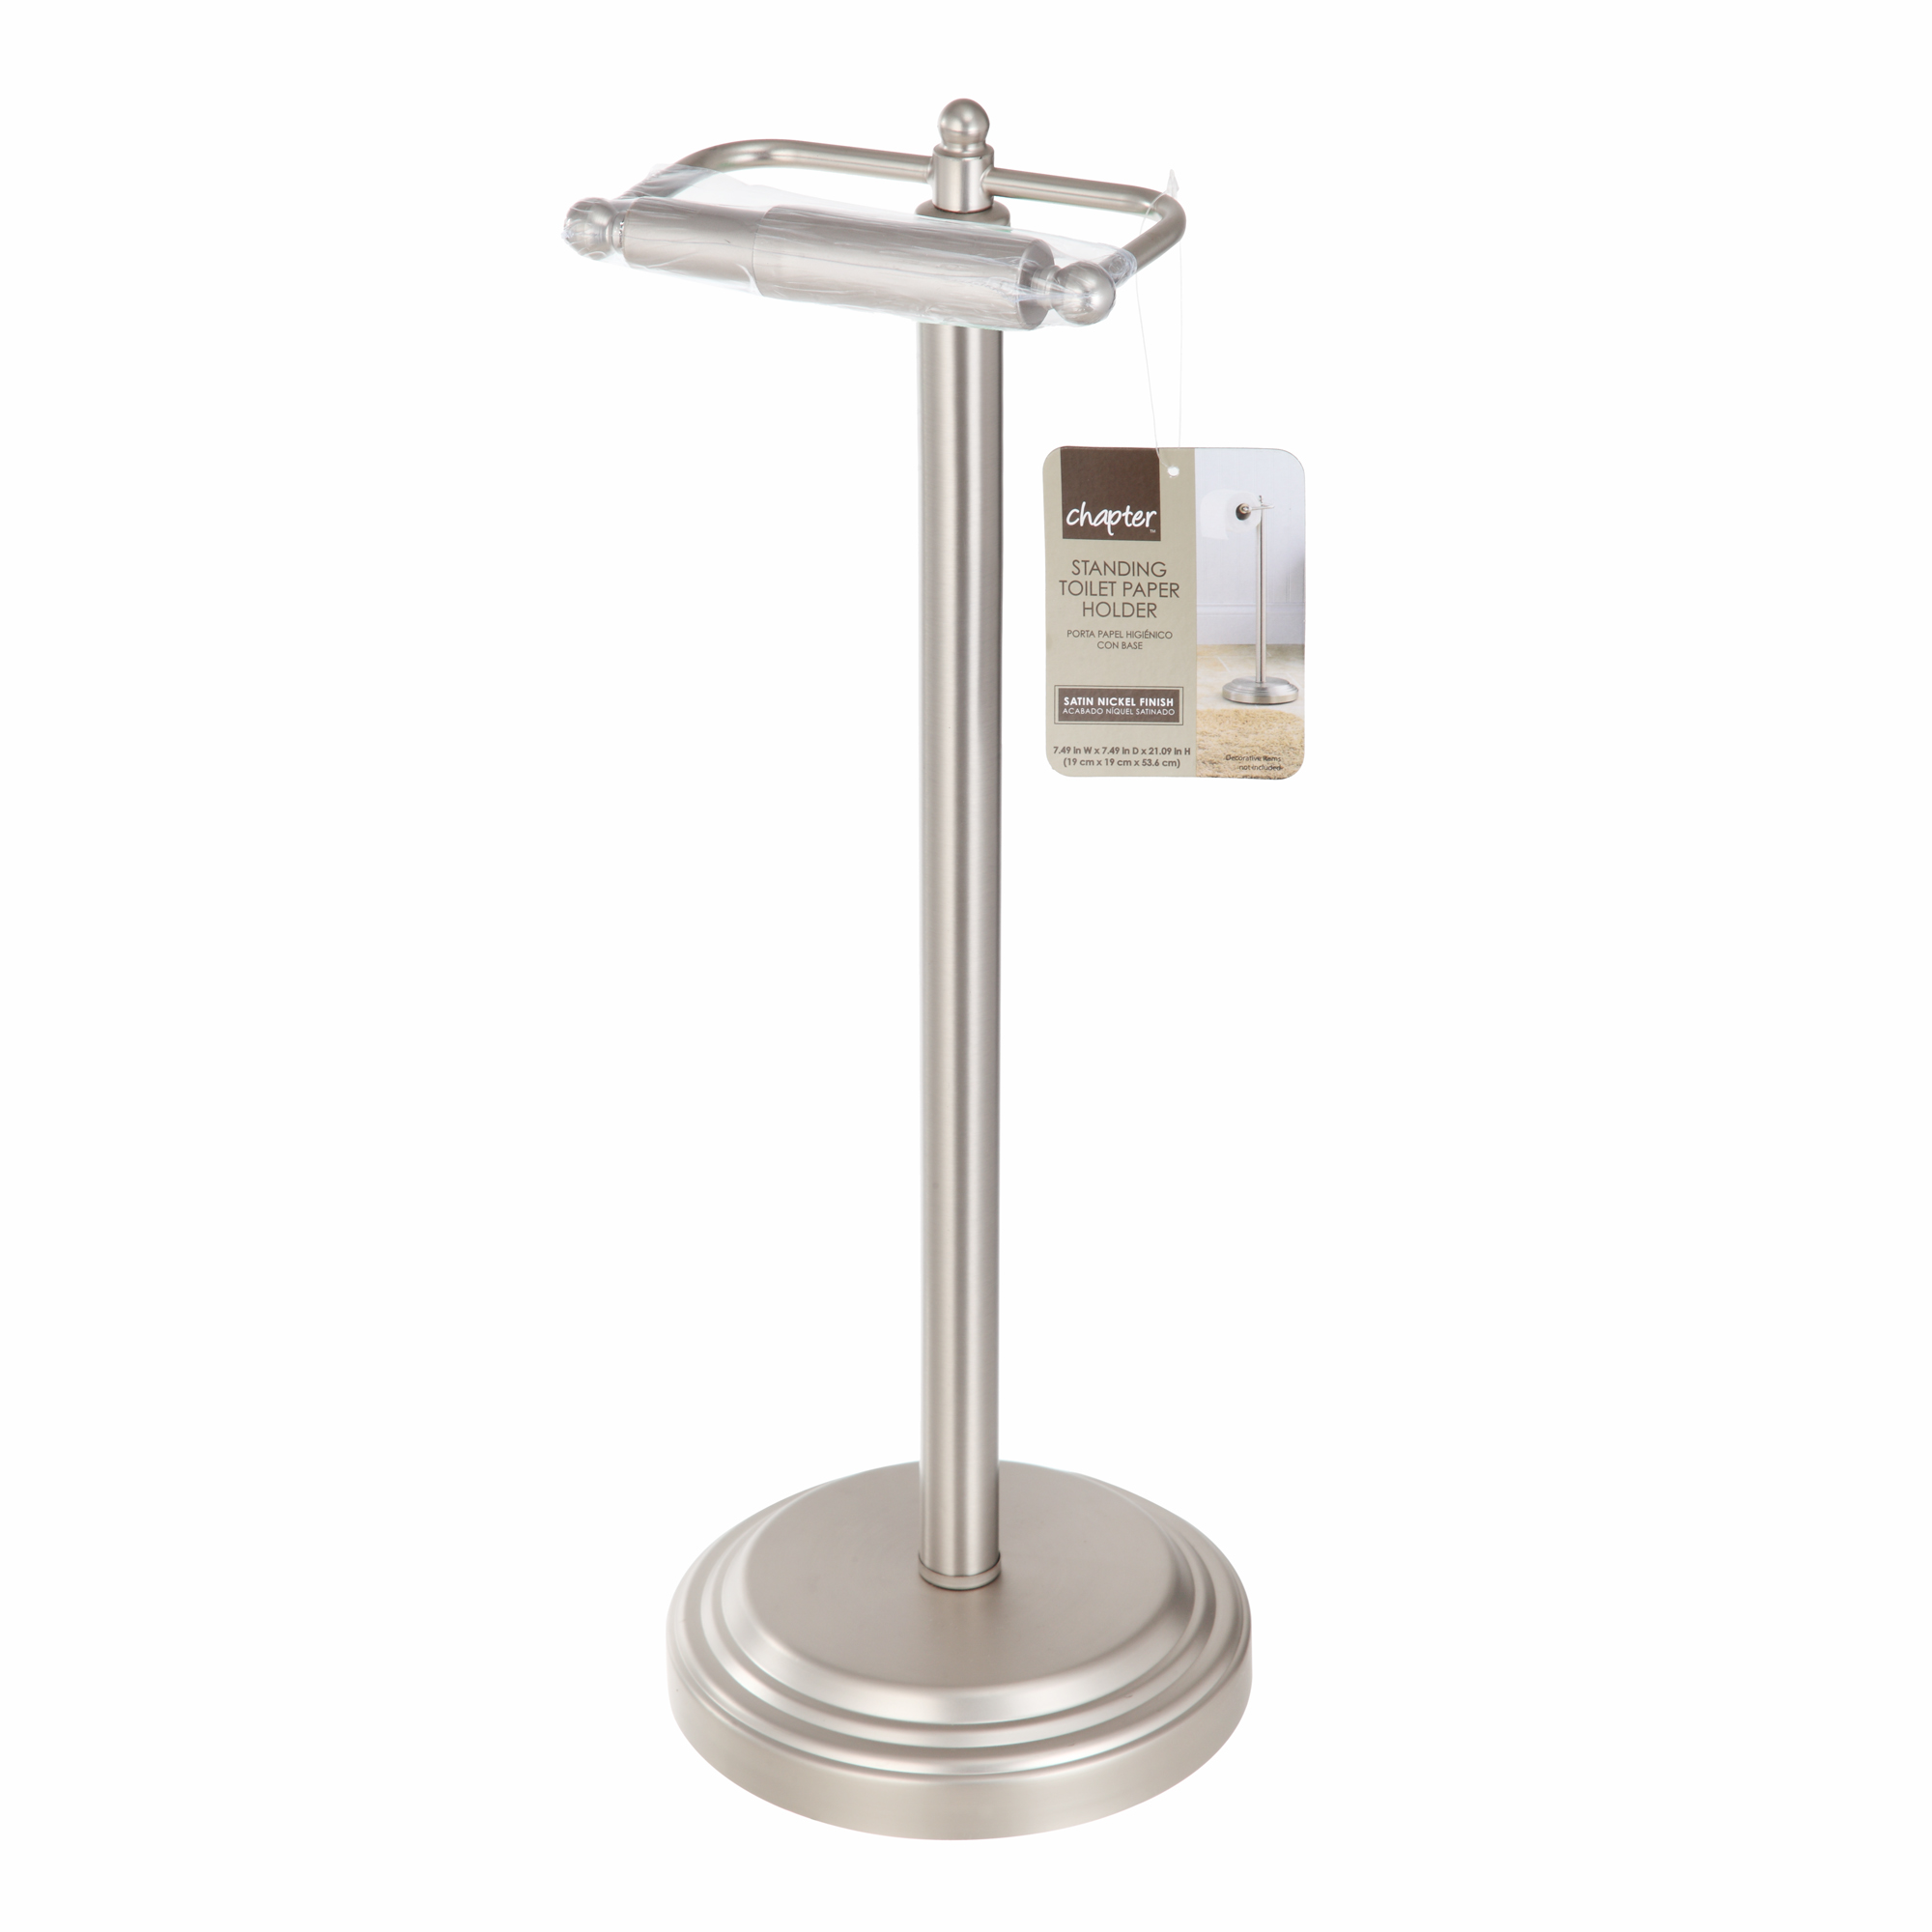 Chapter Standing Toilet Paper Holder, Satin Nickel Finish